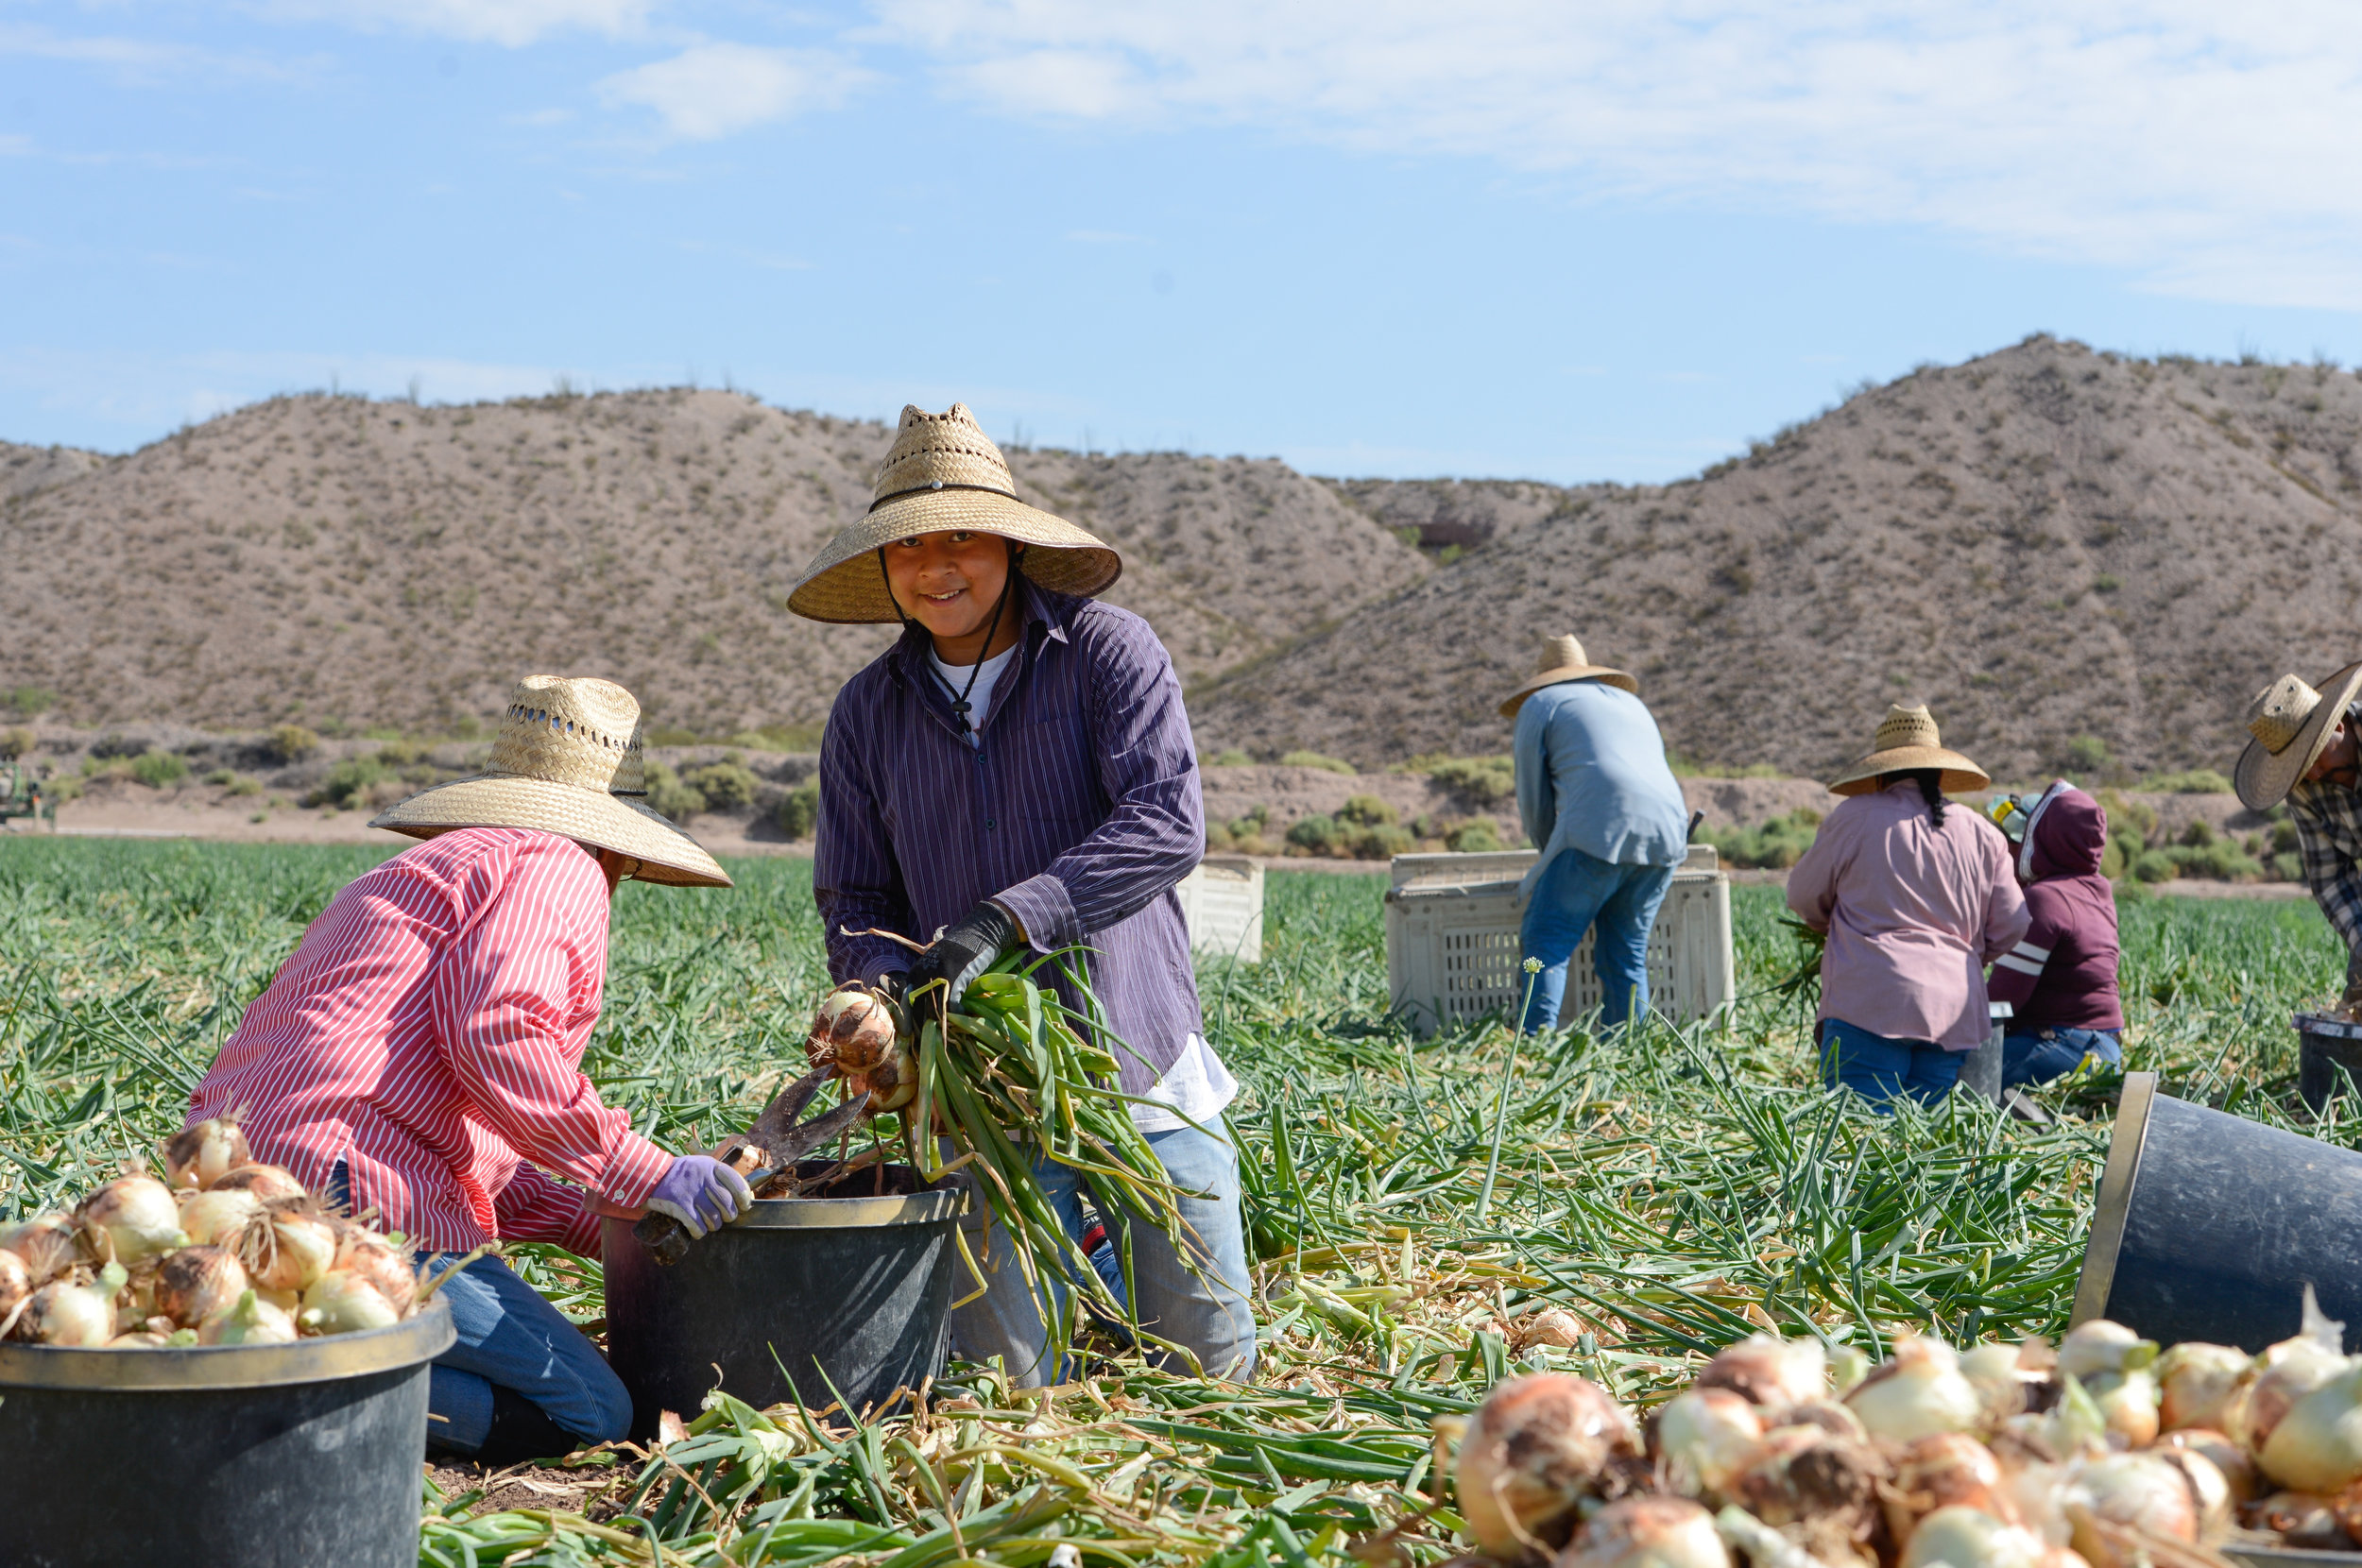 Onion harvest is best ever, growers say